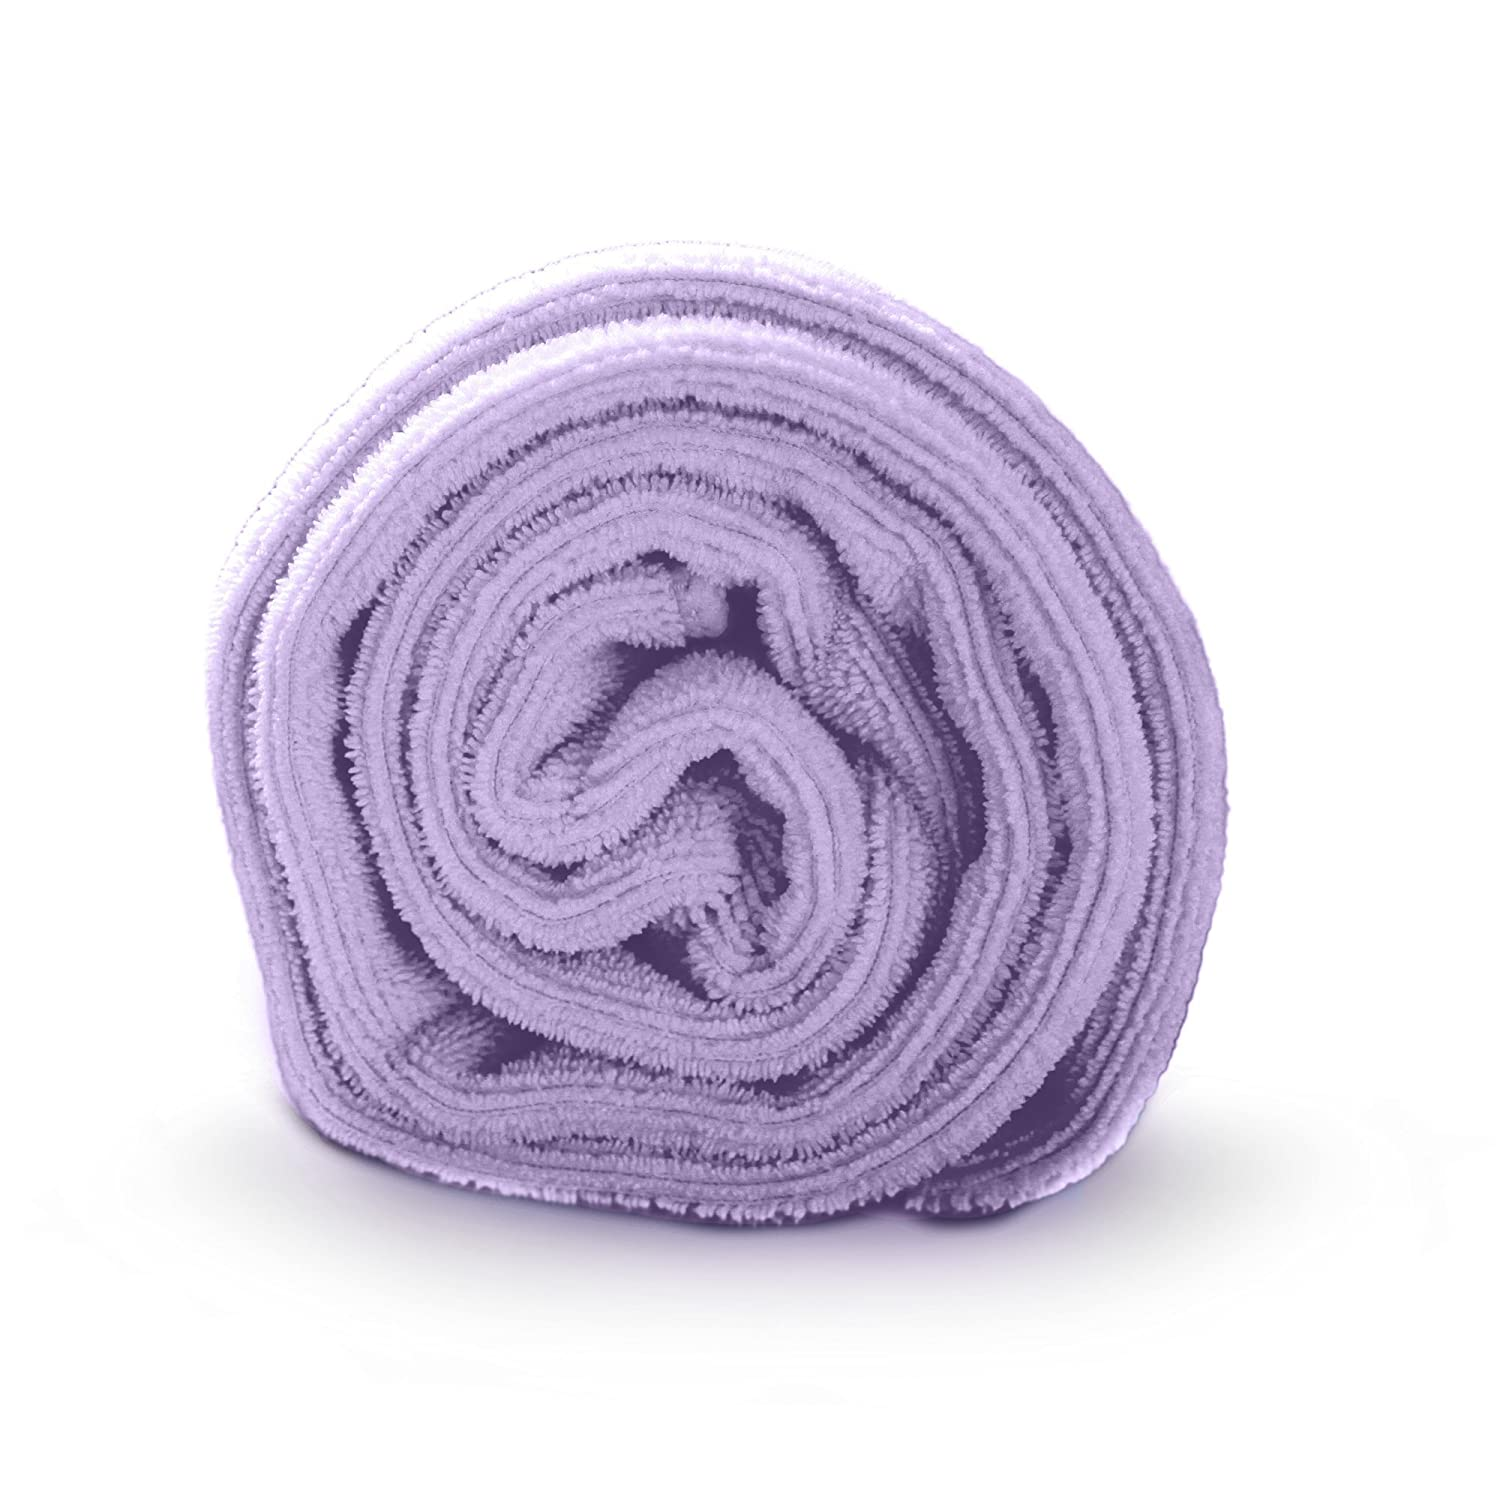 Luxe Beauty Essentials Microfiber Hair Towel for Drying Curly, Long & Thick Hair (20 x 40, Purple)